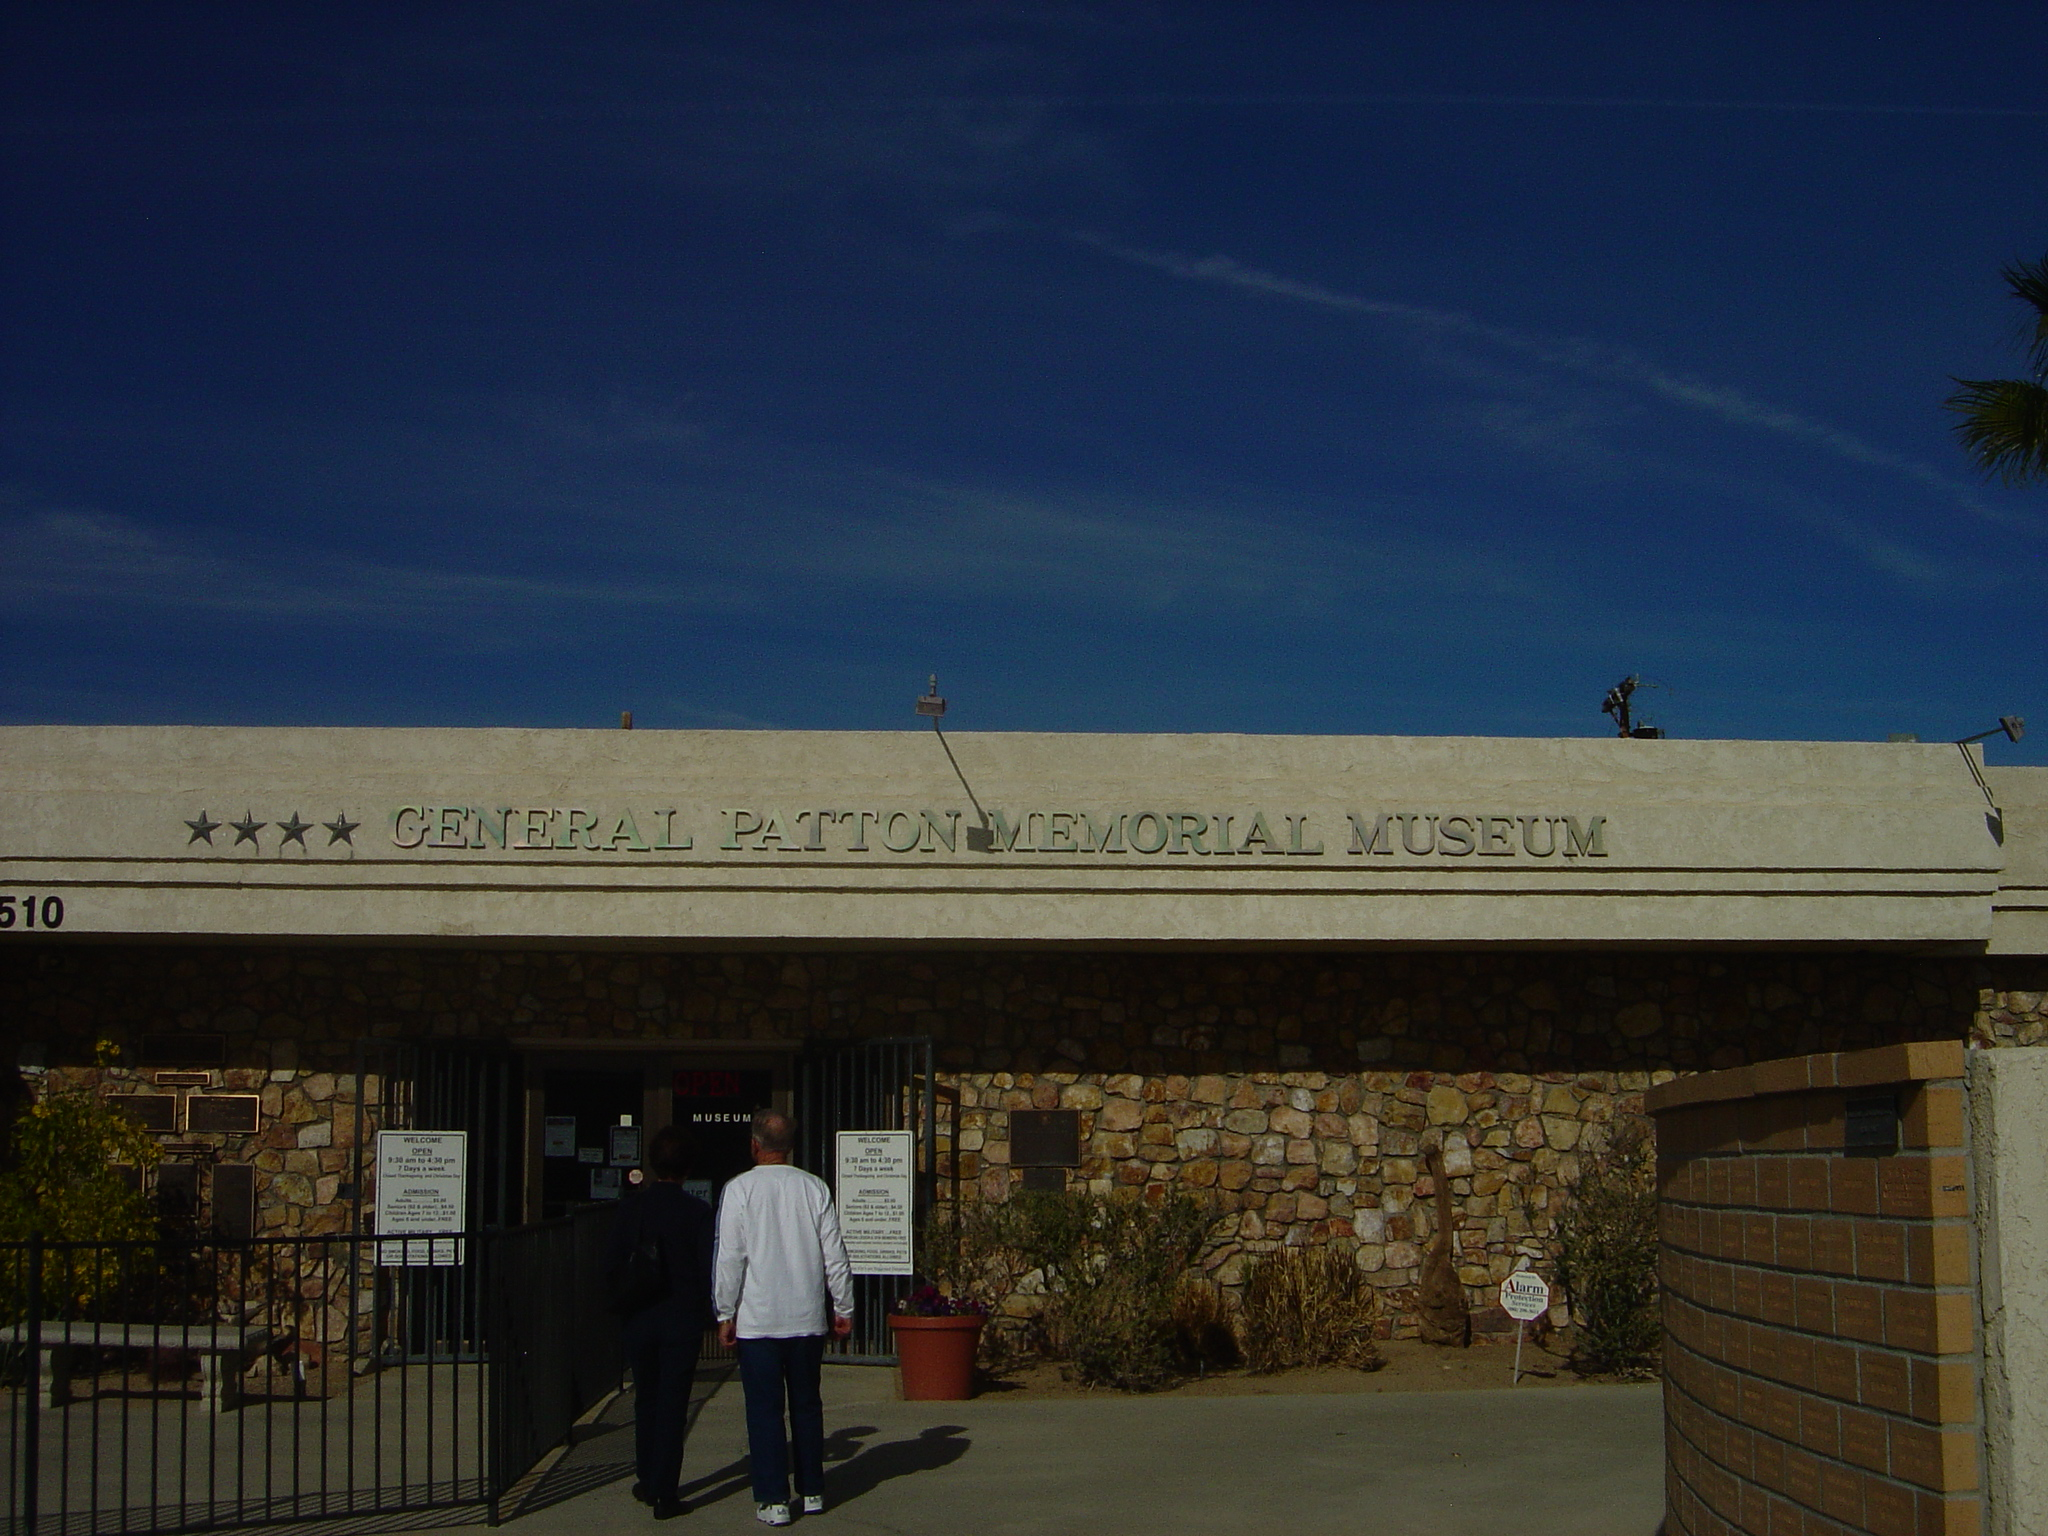 The entrance to the General Patton Memorial Museum